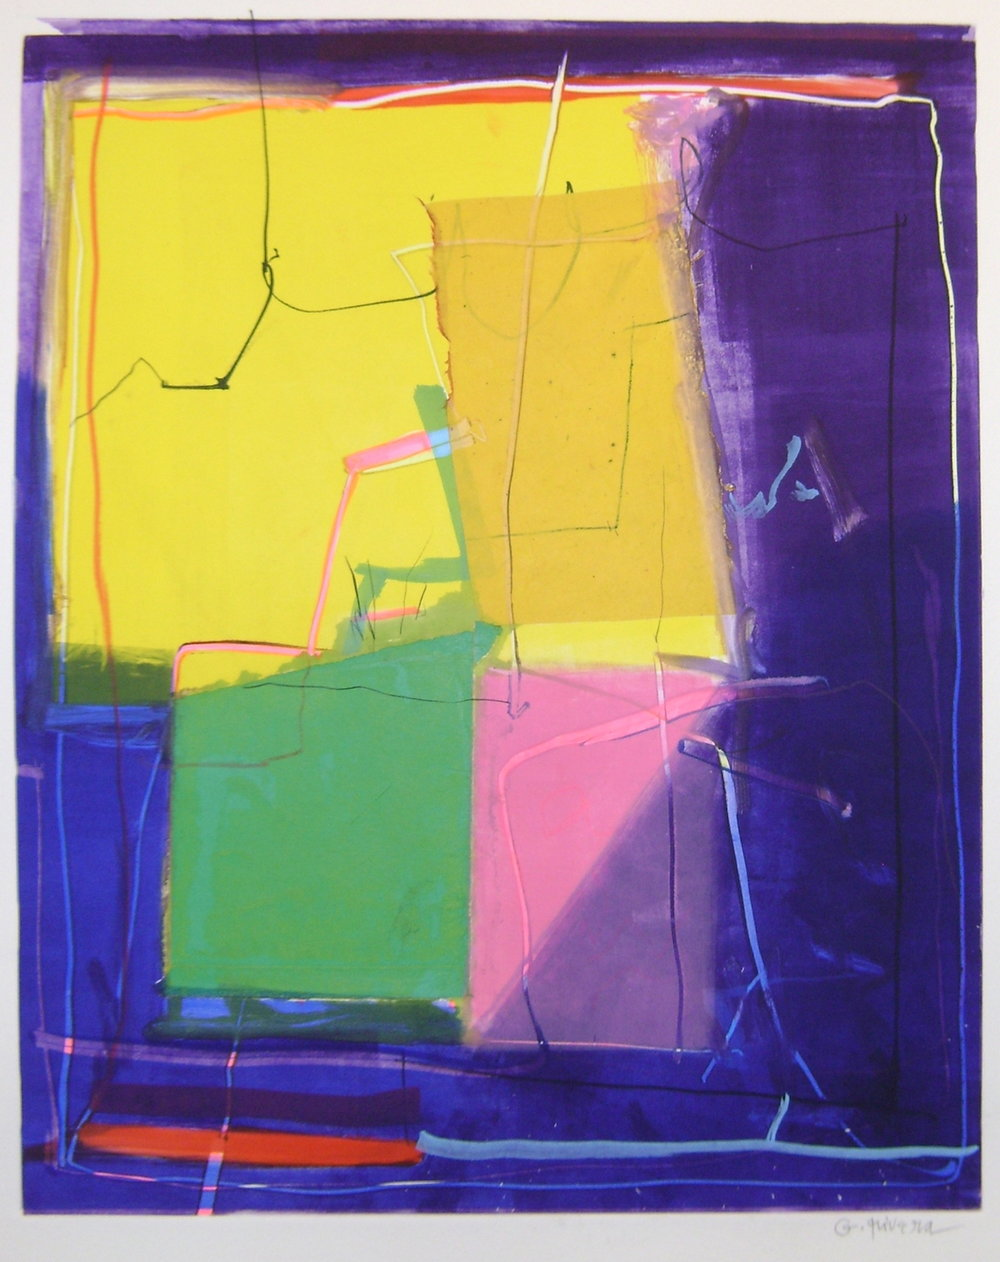 Gustavo Ramos Rivera     Untitled GR 05-6007,  2017 Mixed media monoprint on paper 20 x 15-1/2 inches       For More Information     Artist Biography, Exhibitions & Collections